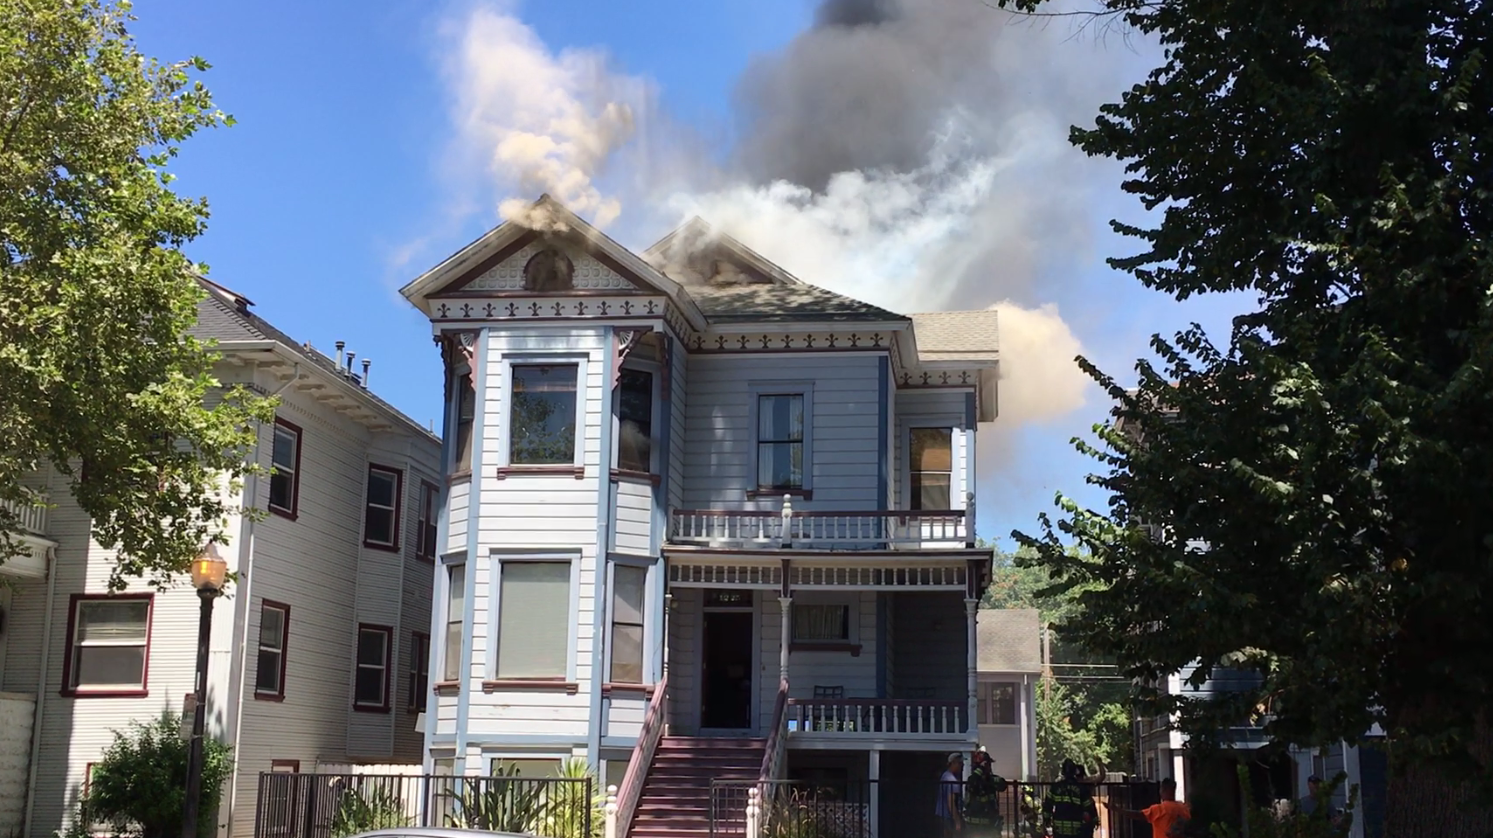 3-Story Victorian home caught fire on 12th/F Streets